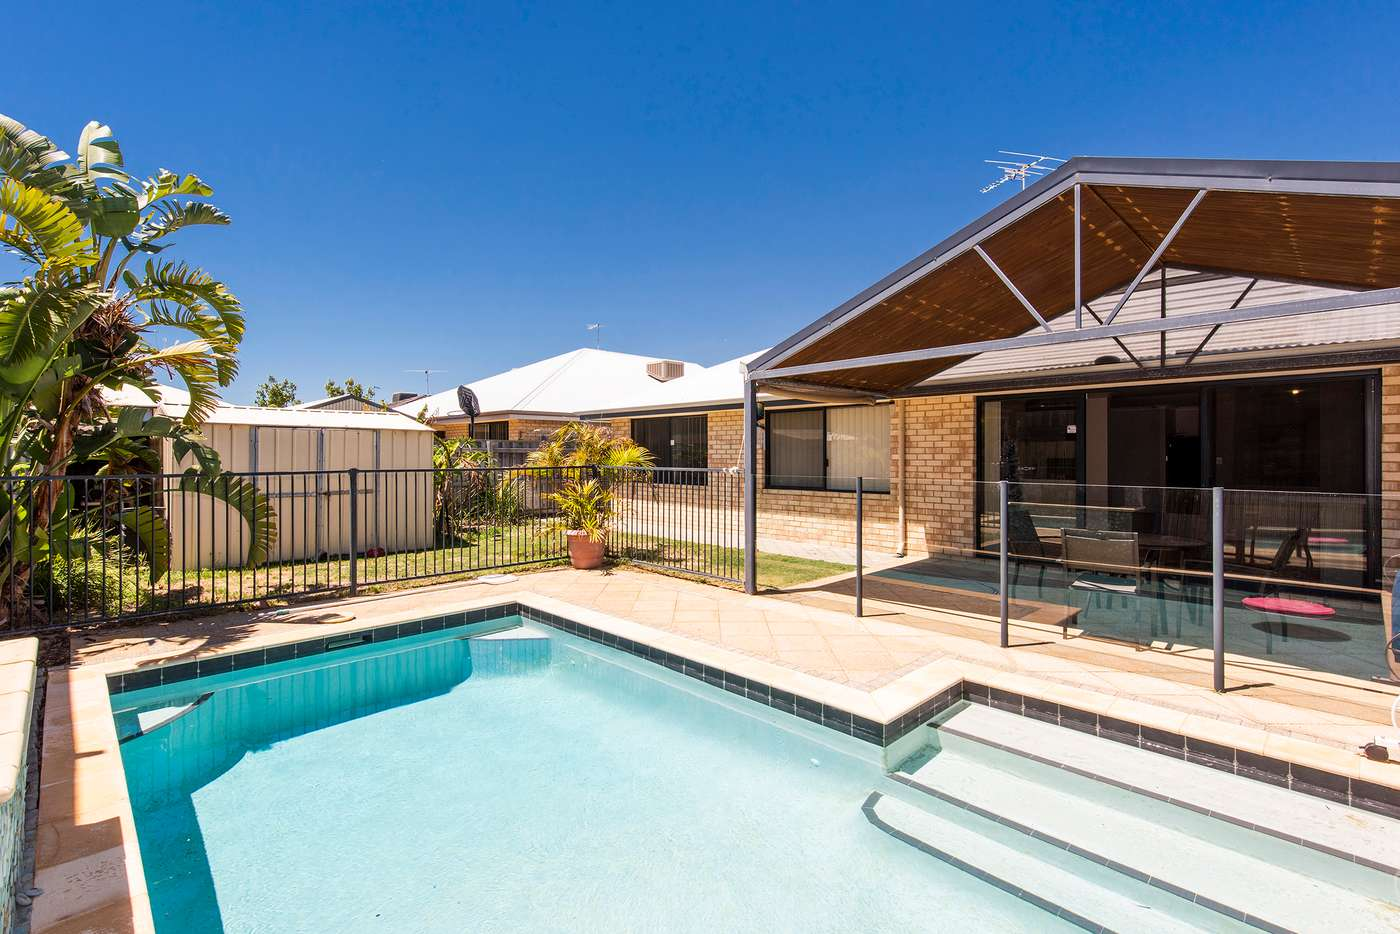 Main view of Homely house listing, 8 Quandong Parkway, Halls Head, WA 6210